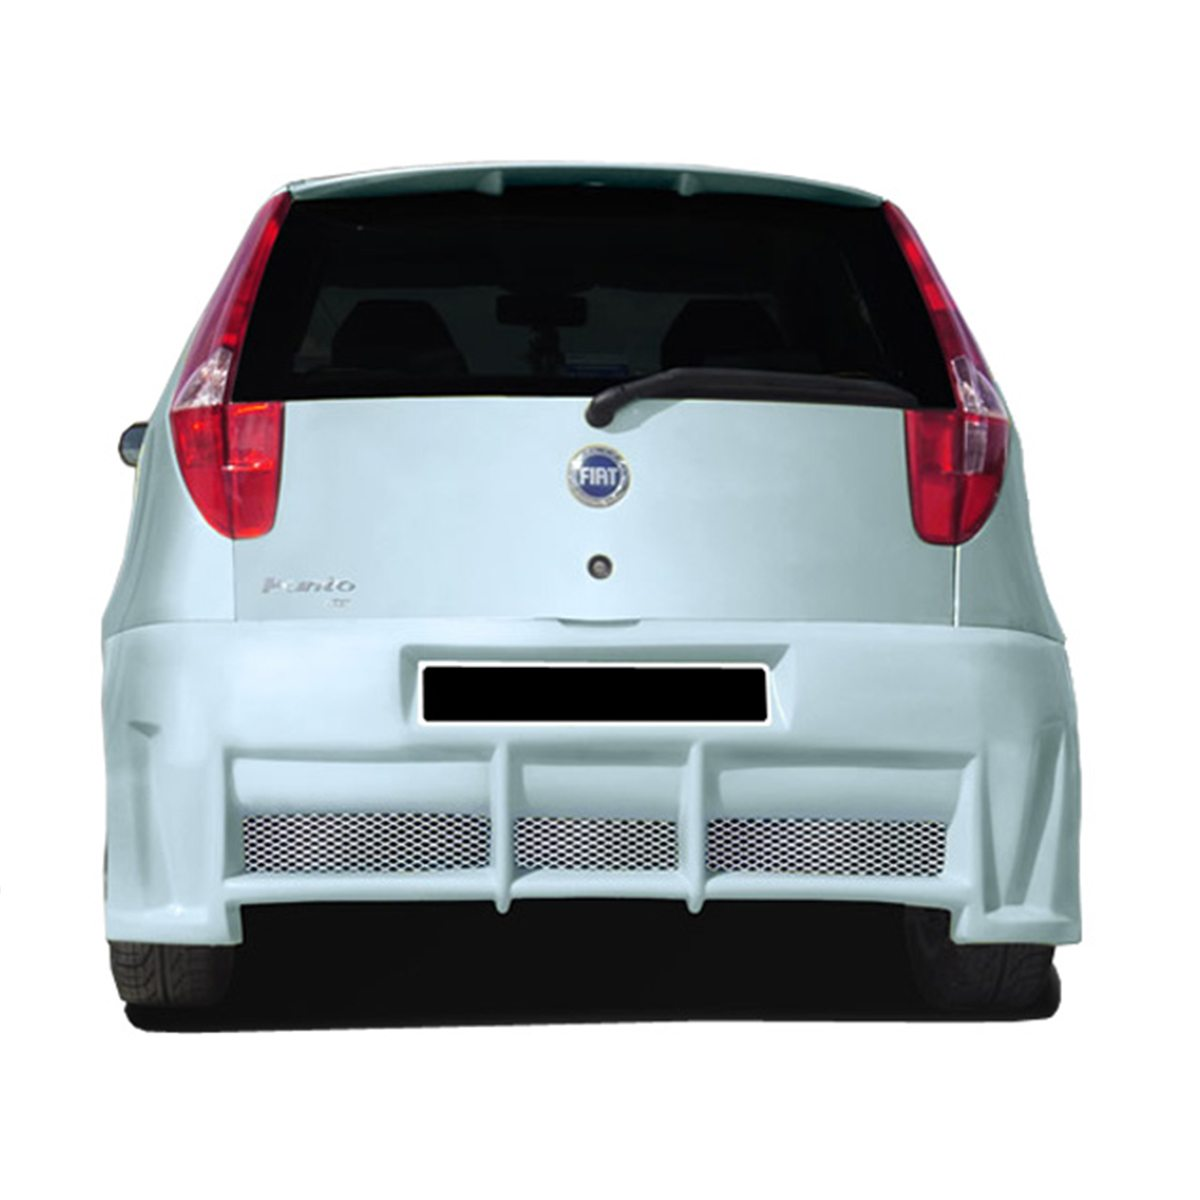 Fiat-Punto-04-3P-Shadow-Tras-PCS061